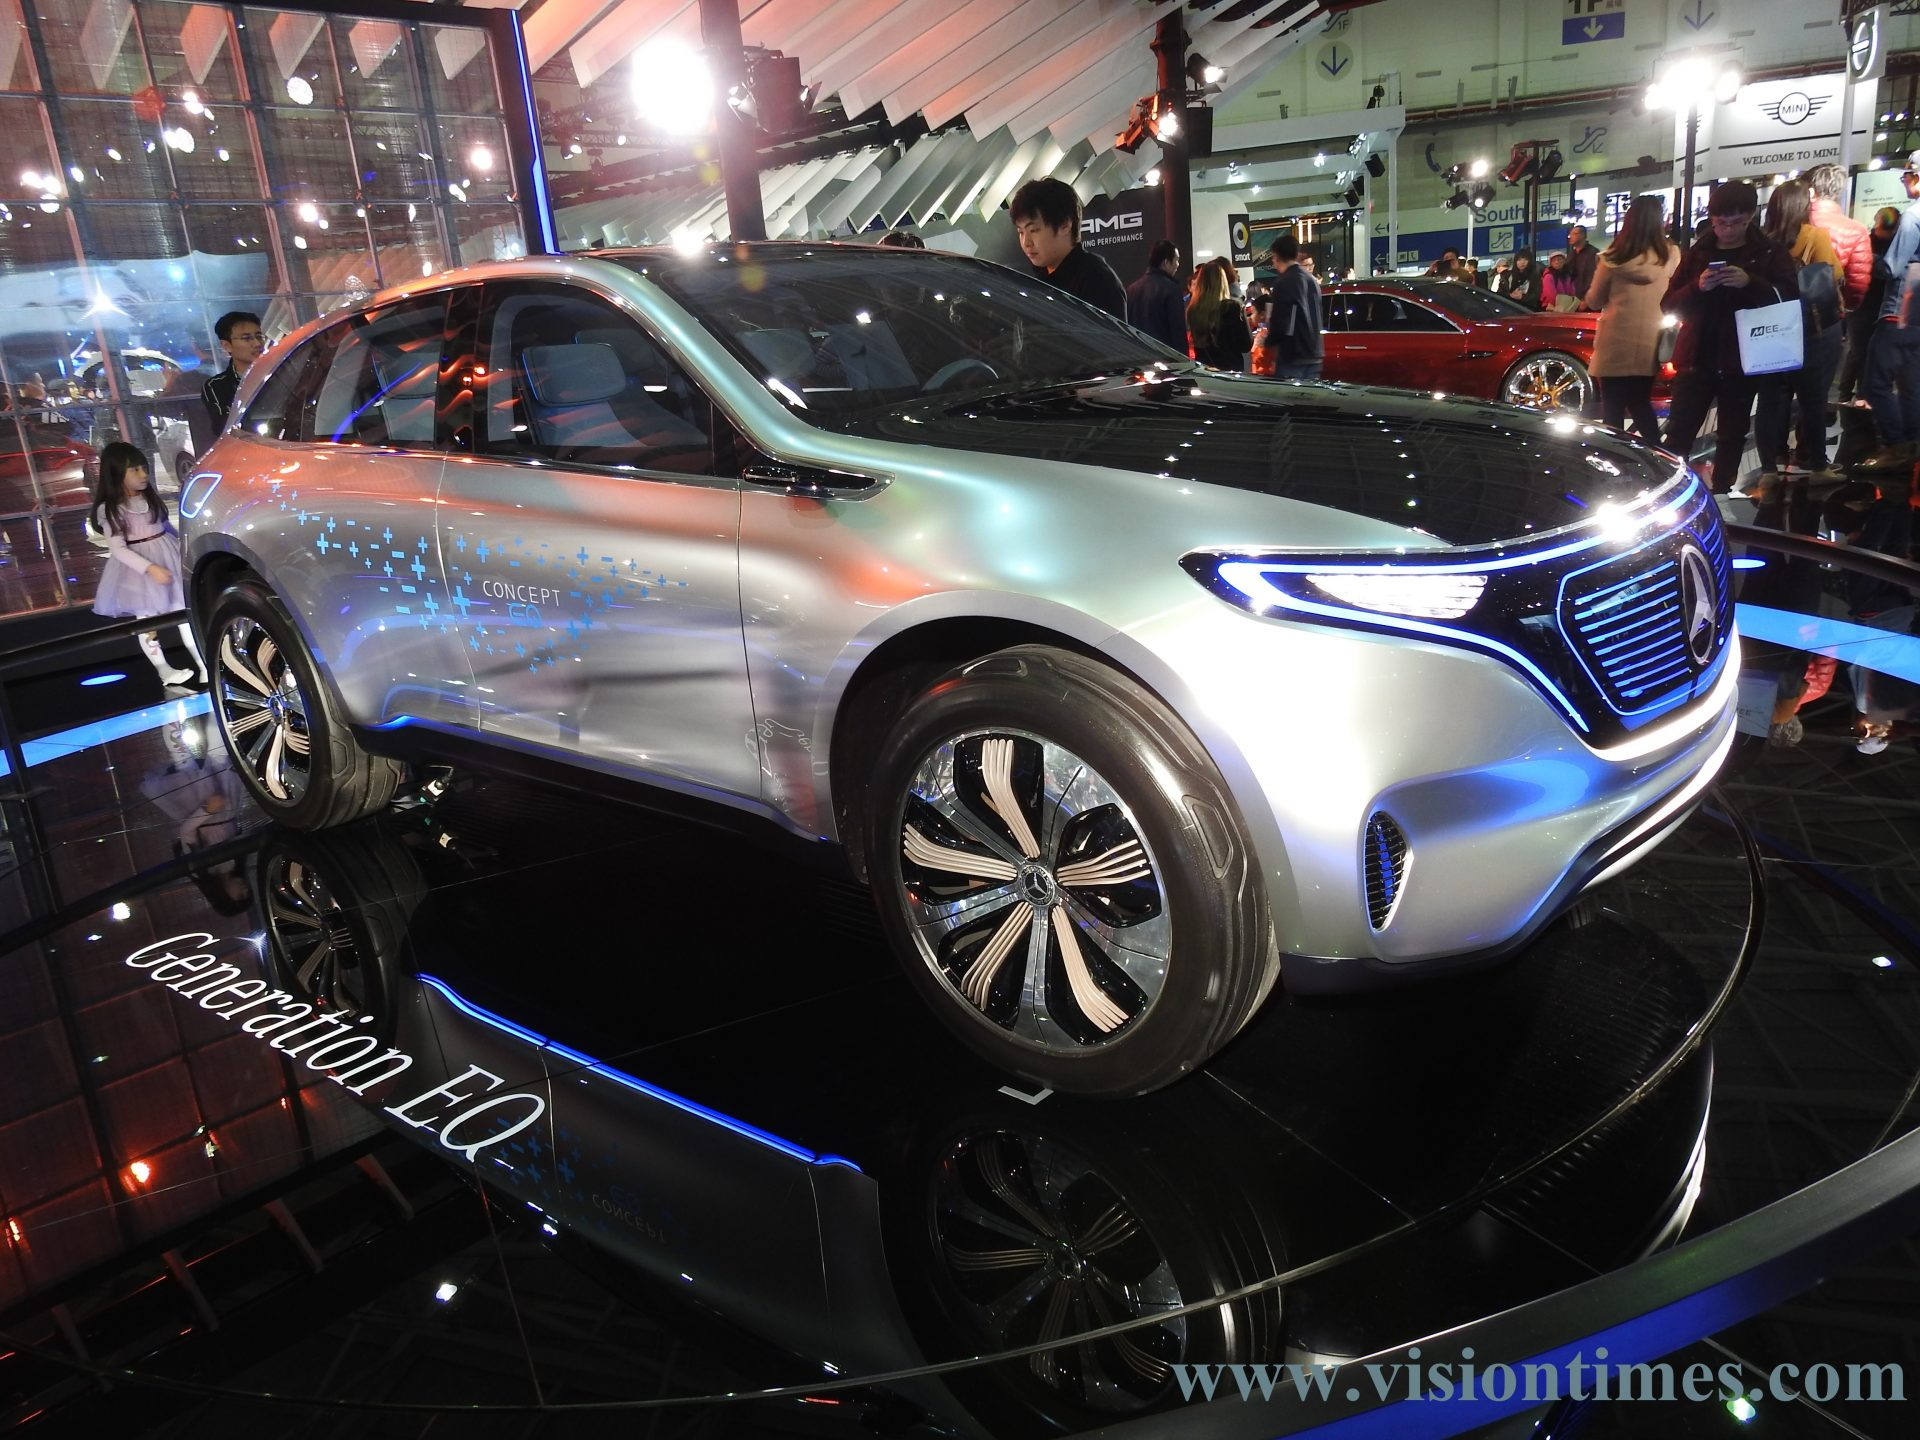 A Mercedes-Benz Generation EQ Concept vehicle at the 2018 Taipei International Auto Show (Image: Julia Fu / Vision Times)